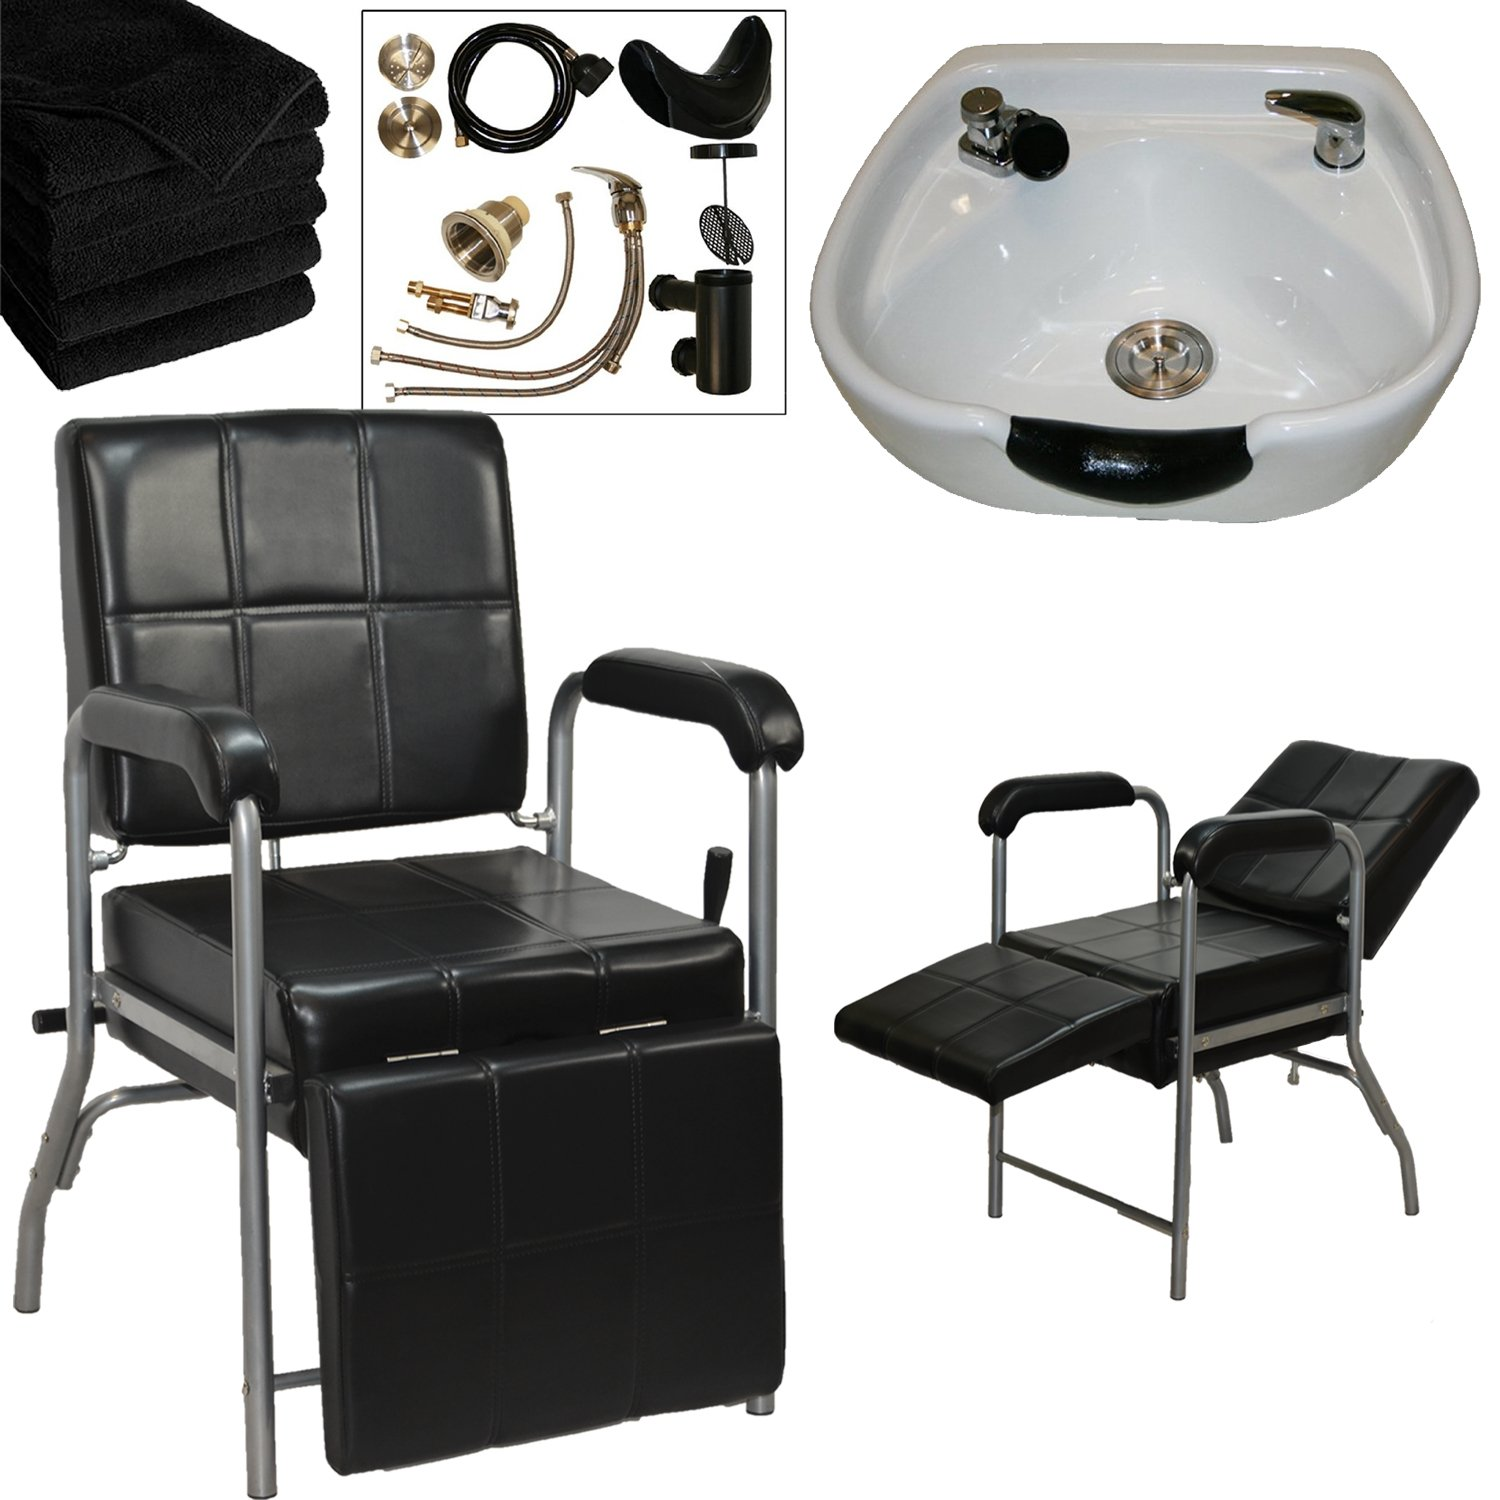 LCL Beauty Shampoo Package with Reclining Shampoo Chair with Adjustable Leg rest & Heart Shaped White Ceramic Shampoo Bowl – FREE 6 Black Absorbent Salon Quality Towels